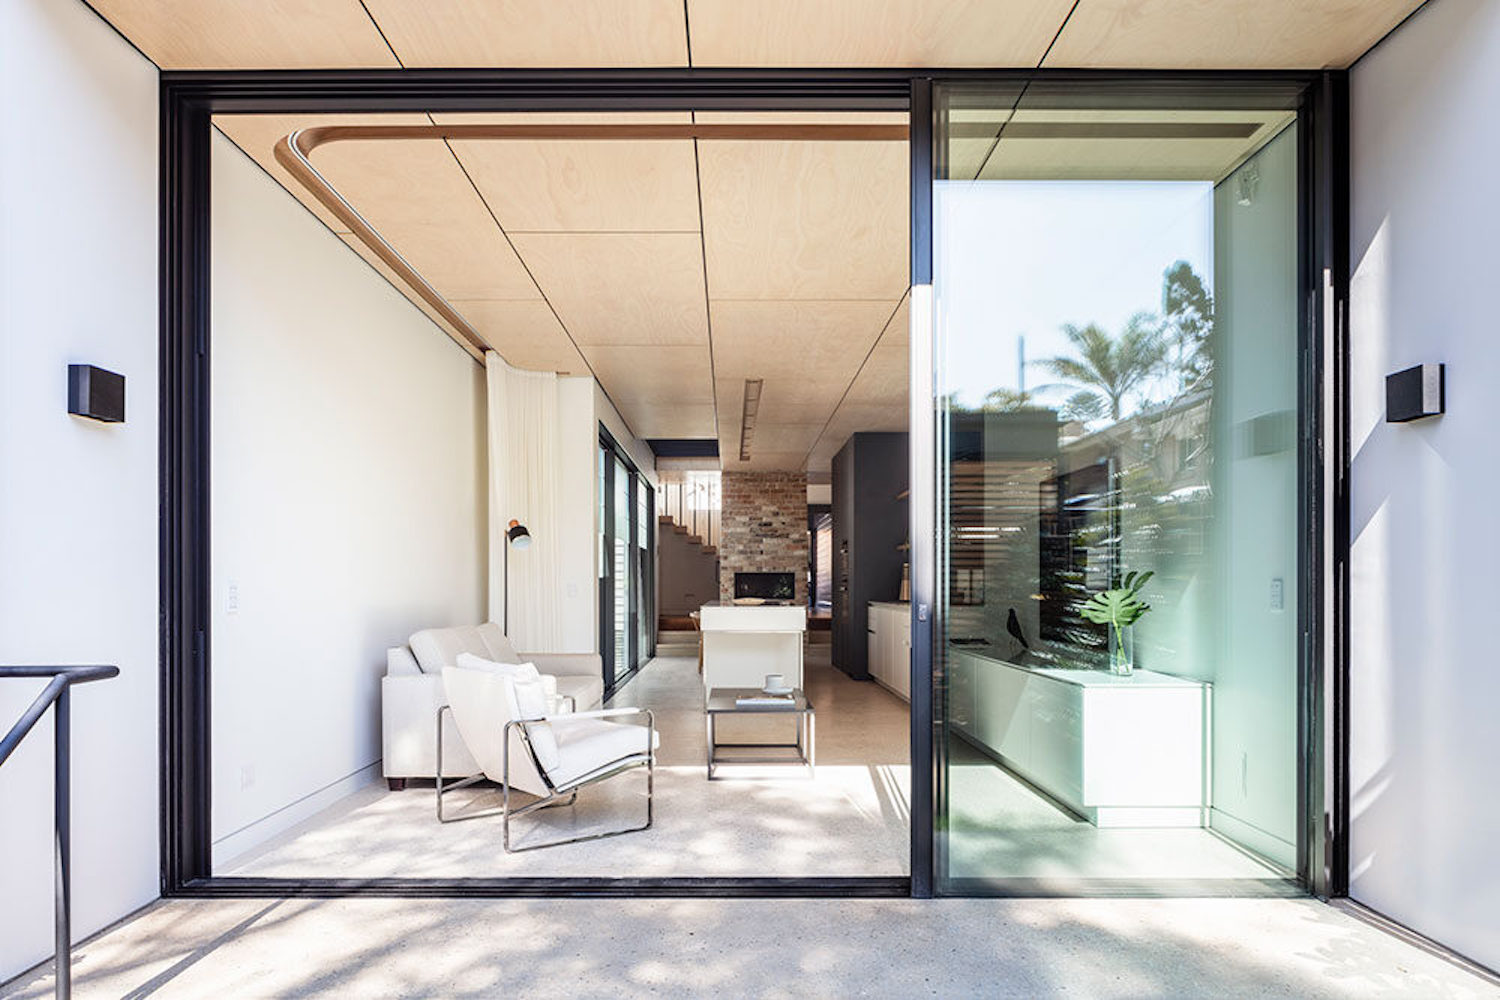 manley-darley-archisoul-architects